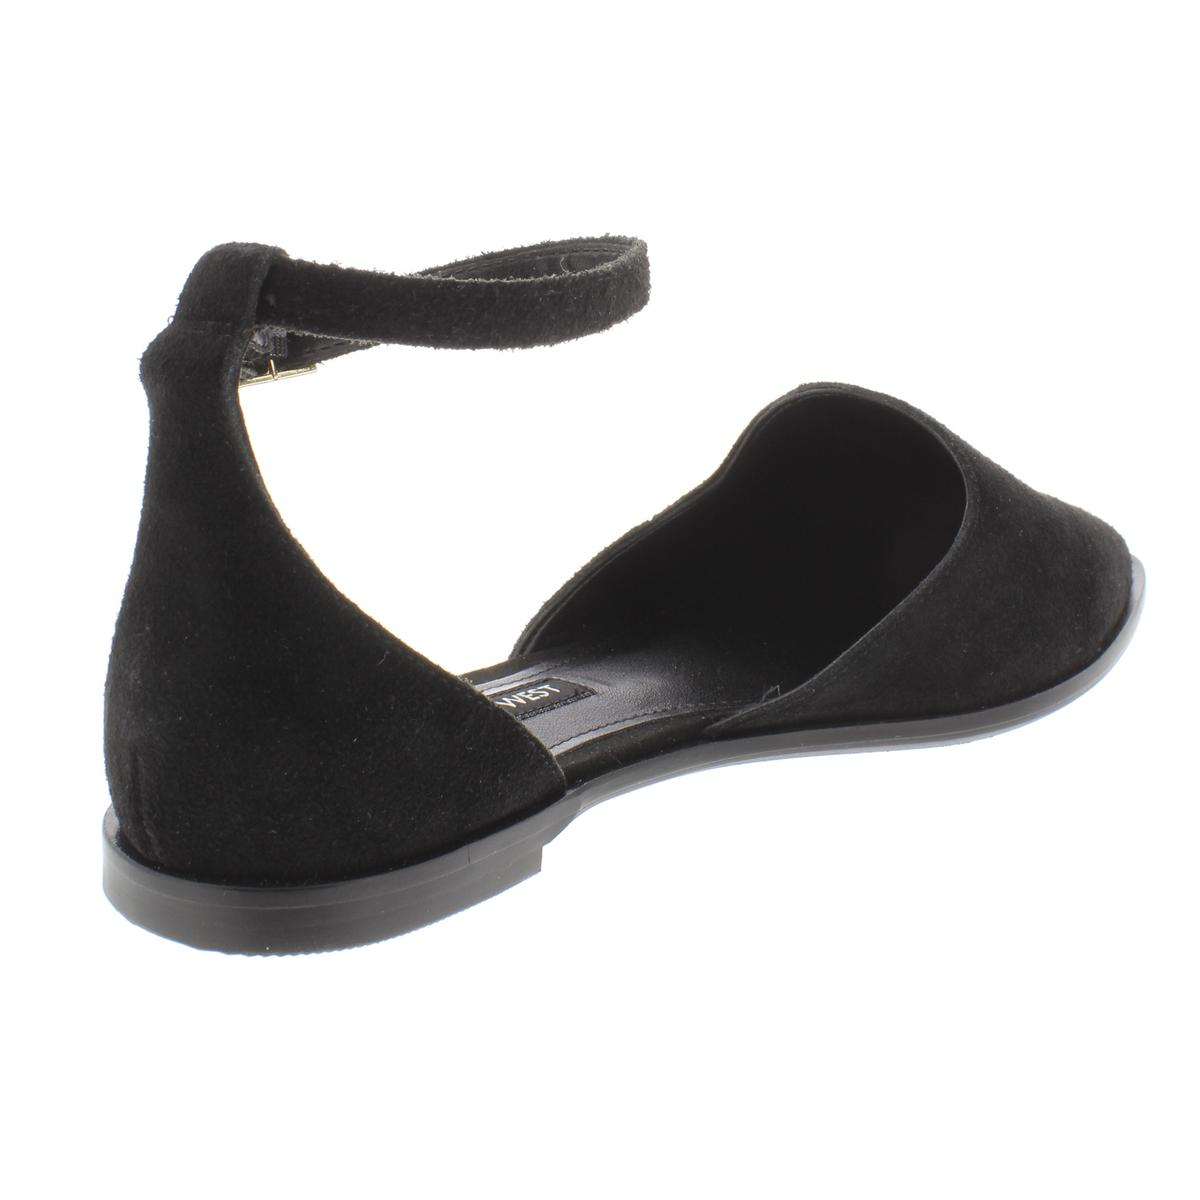 Nine-West-Womens-Oriona-Solid-Suede-D-039-Orsays-Flats-Shoes-BHFO-8106 thumbnail 4